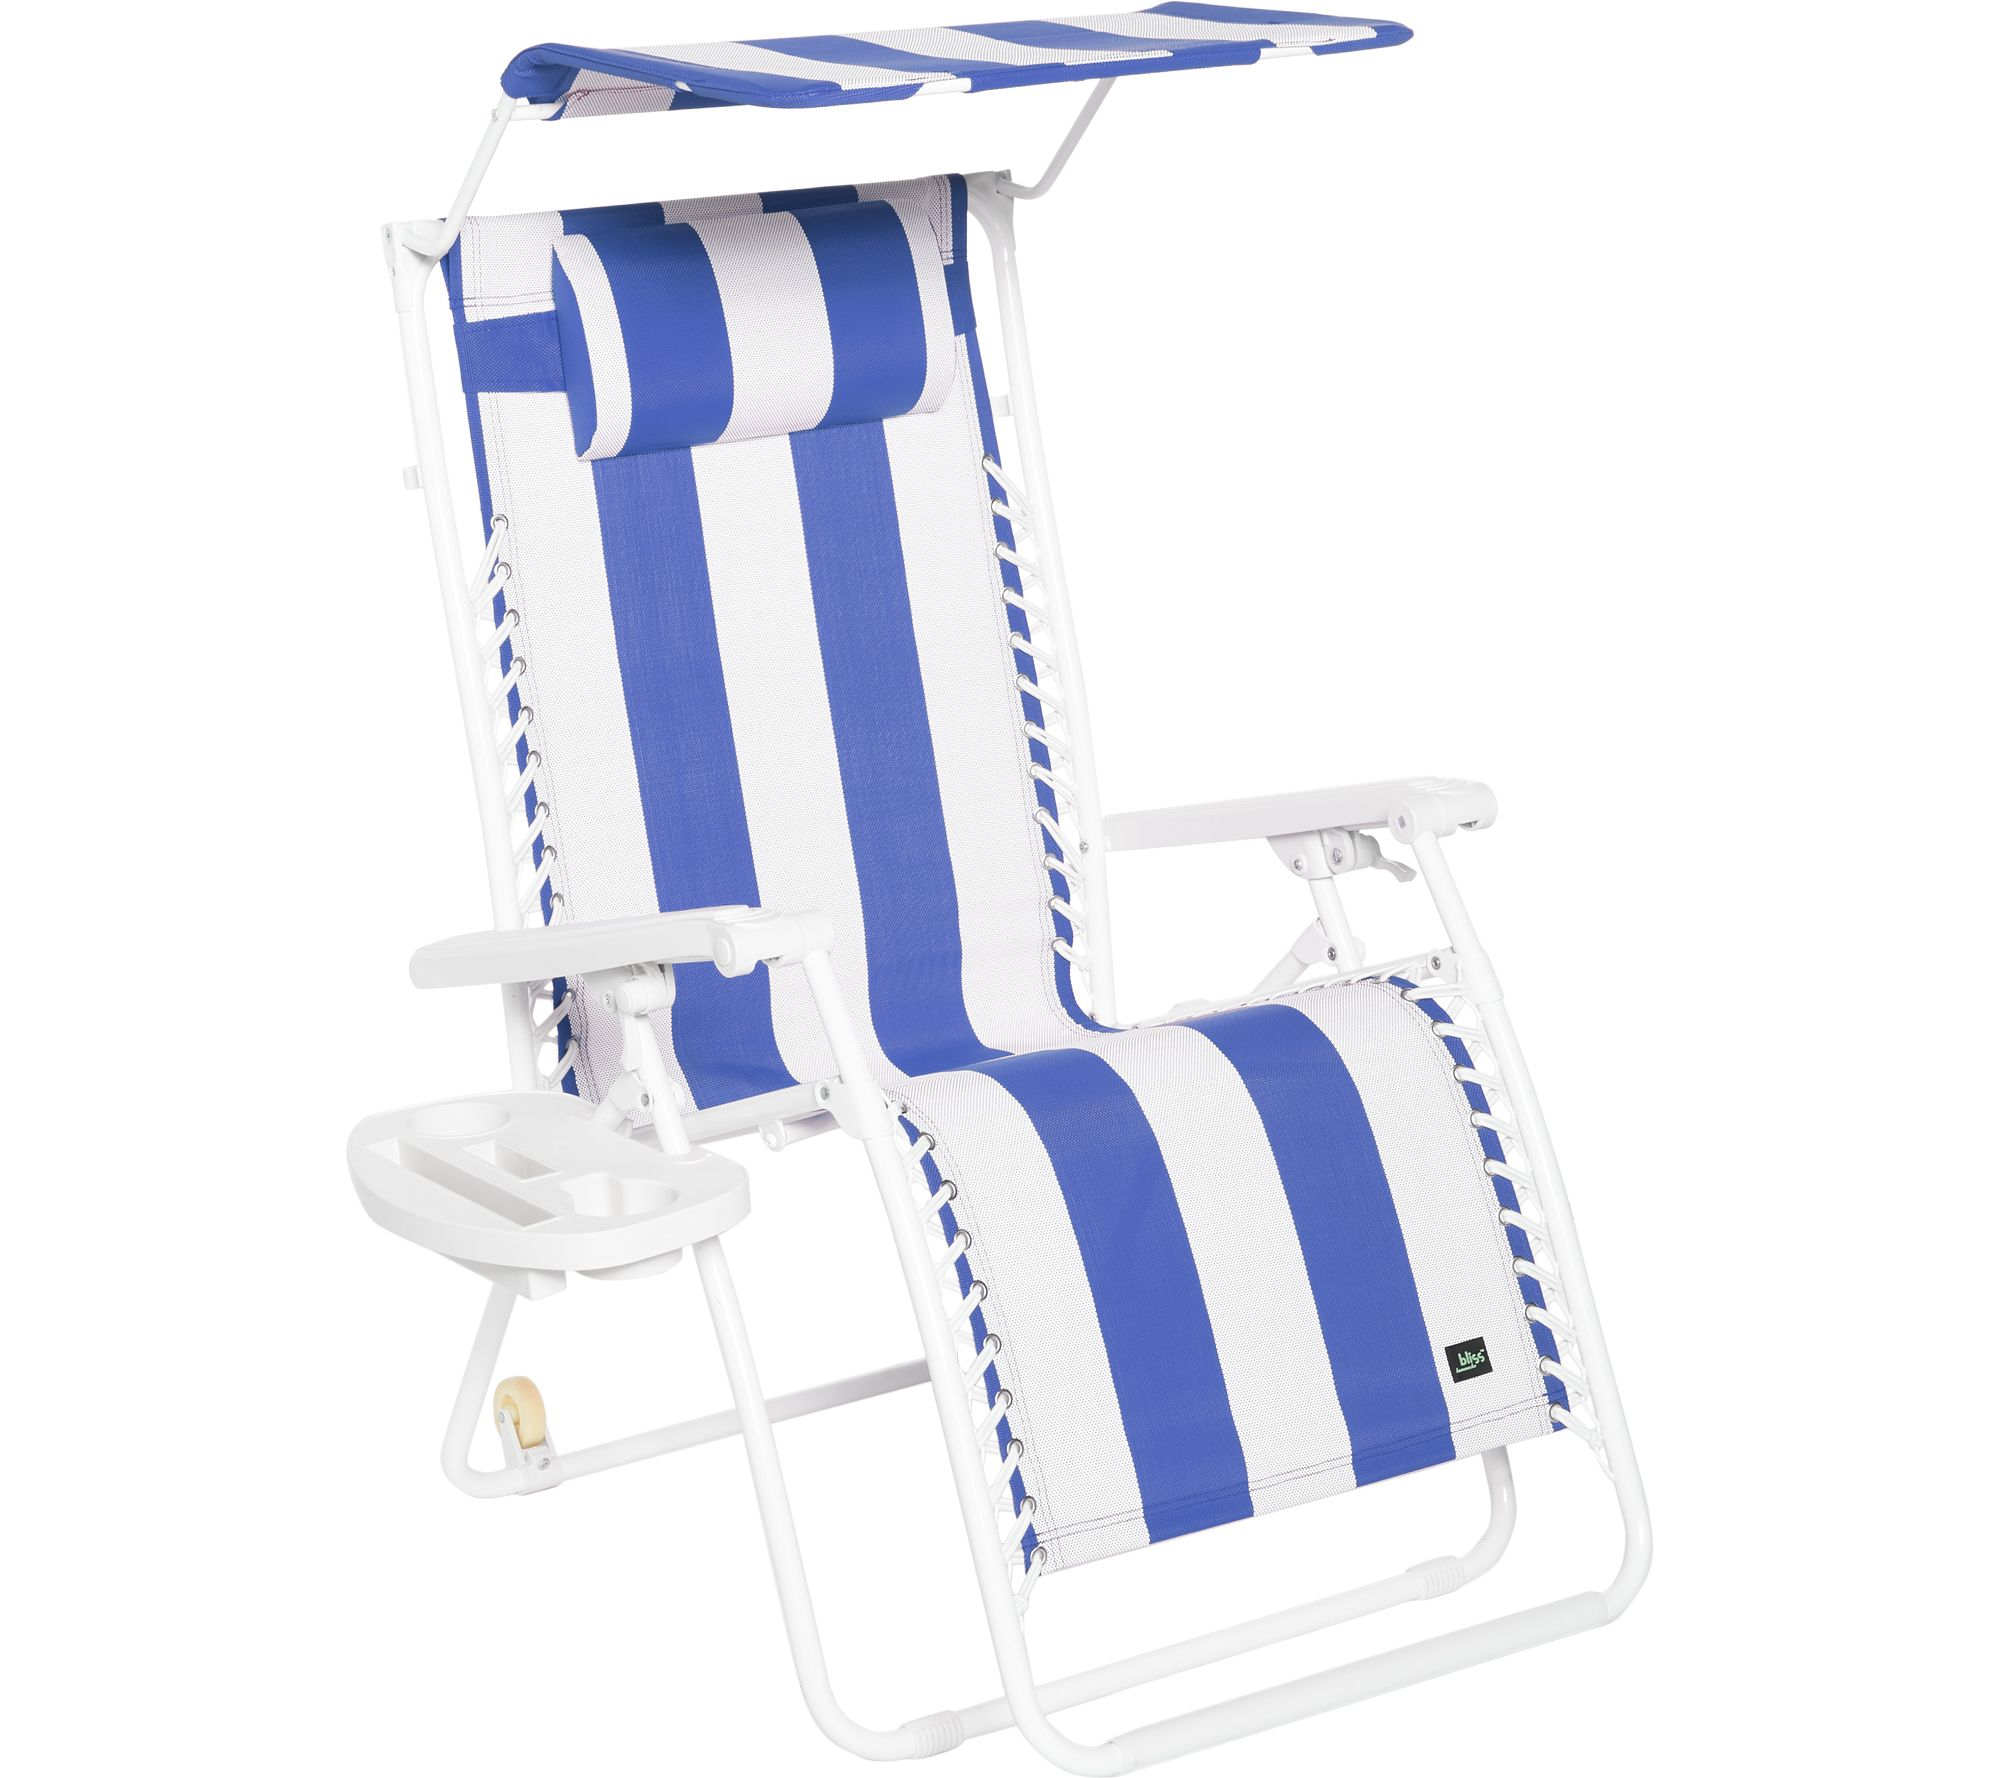 Bliss Hammocks XL Gravity Free Recliner with Canopy Tray and